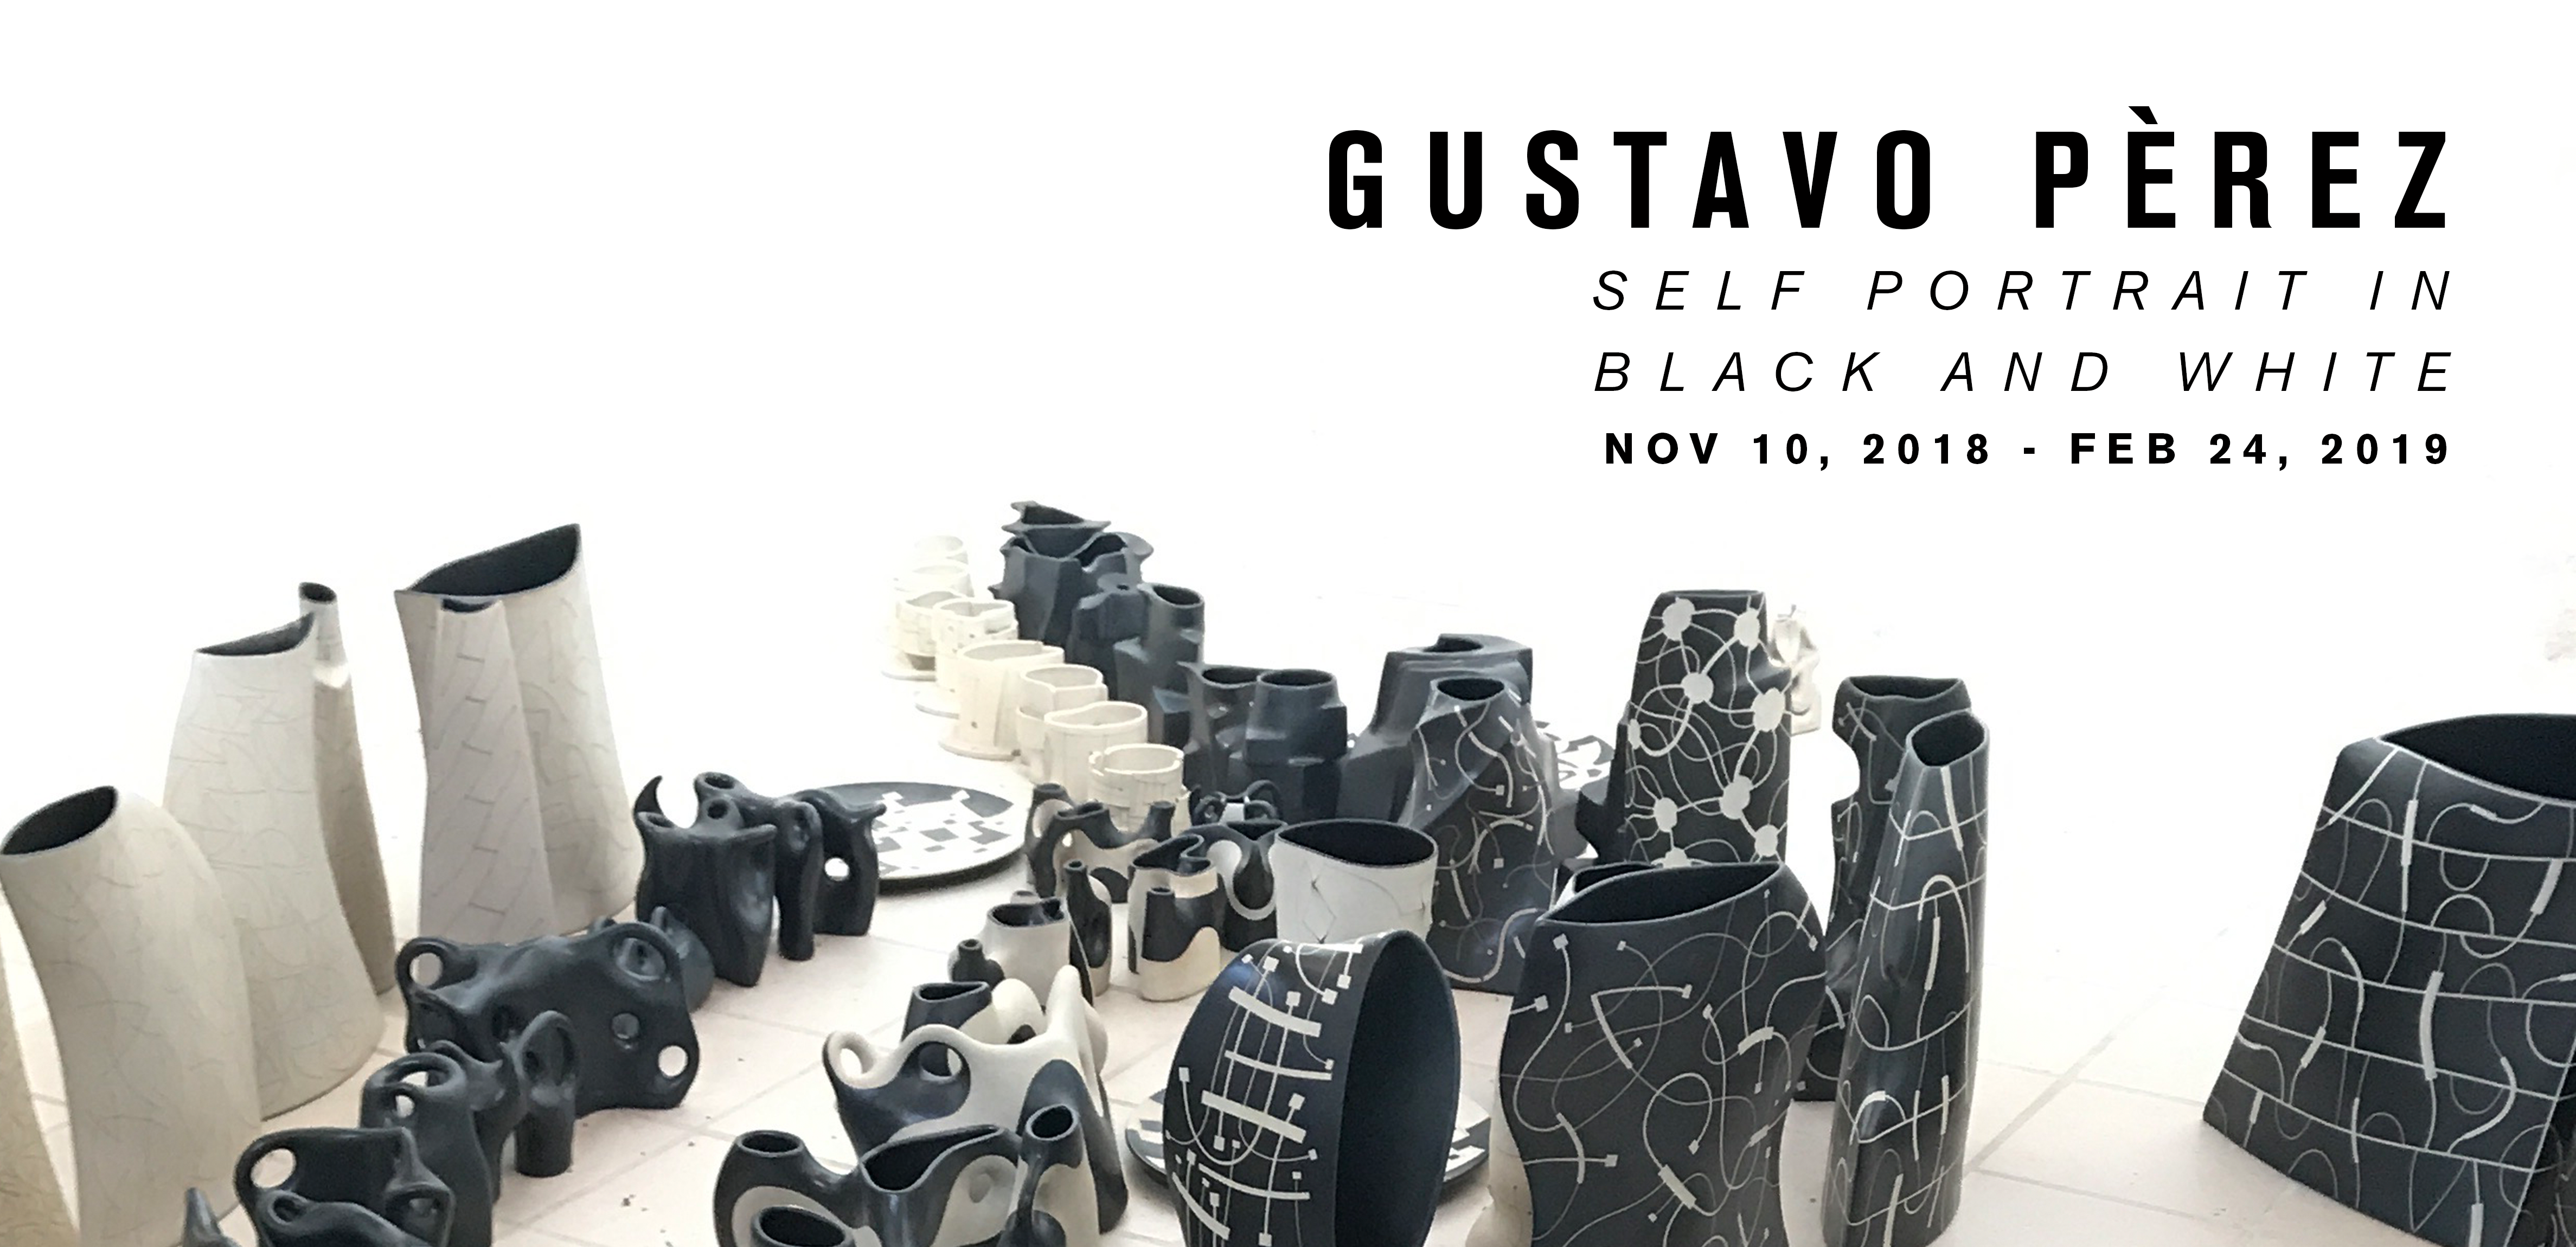 Gustavo Perez: Self Portrait in Black and White at the Museum of Craft and Design